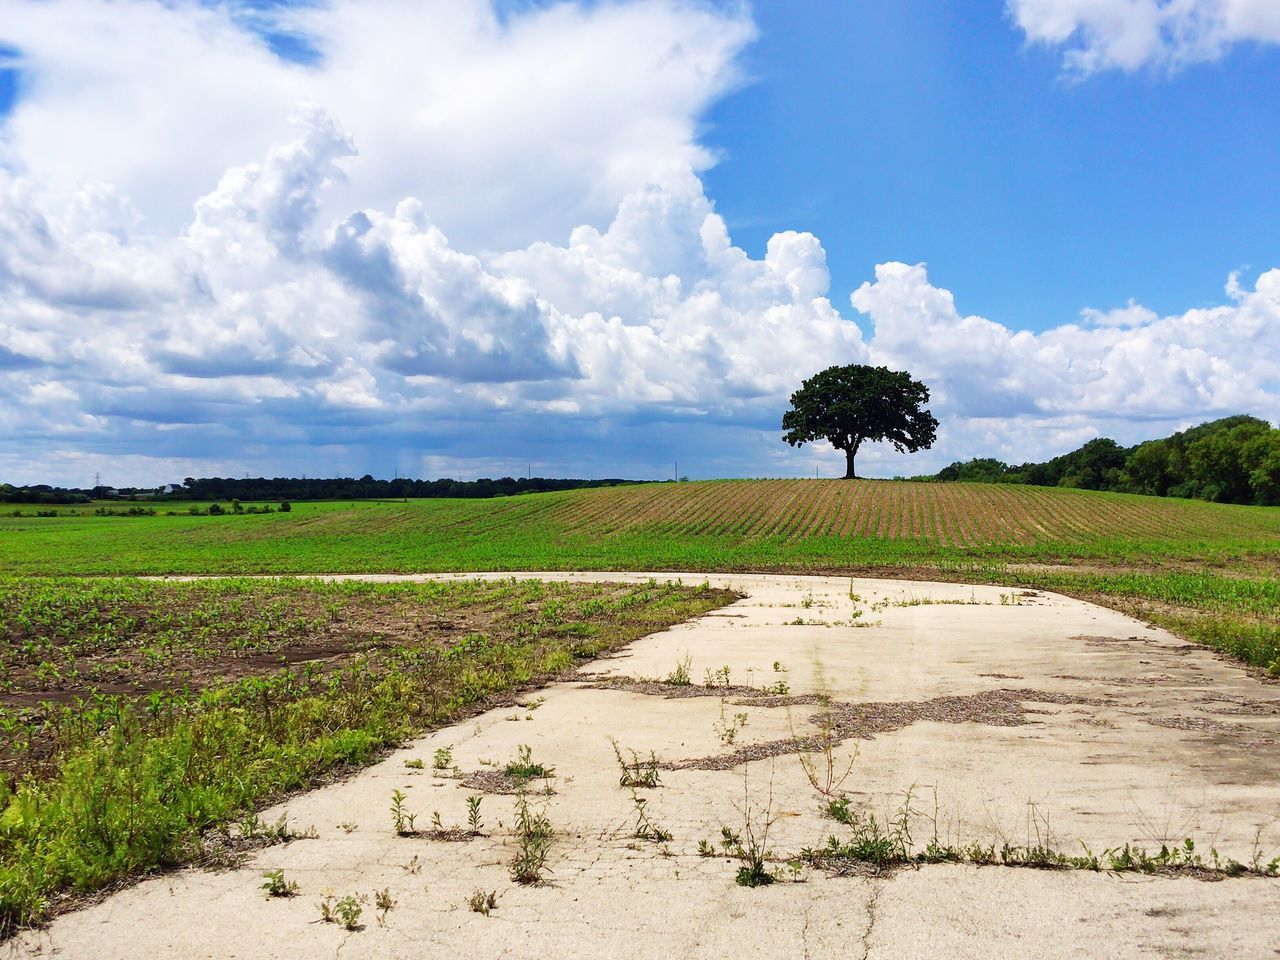 agriculture, field, tranquility, nature, growth, tranquil scene, beauty in nature, rural scene, landscape, scenics, cloud - sky, sky, cultivated land, day, outdoors, no people, tree